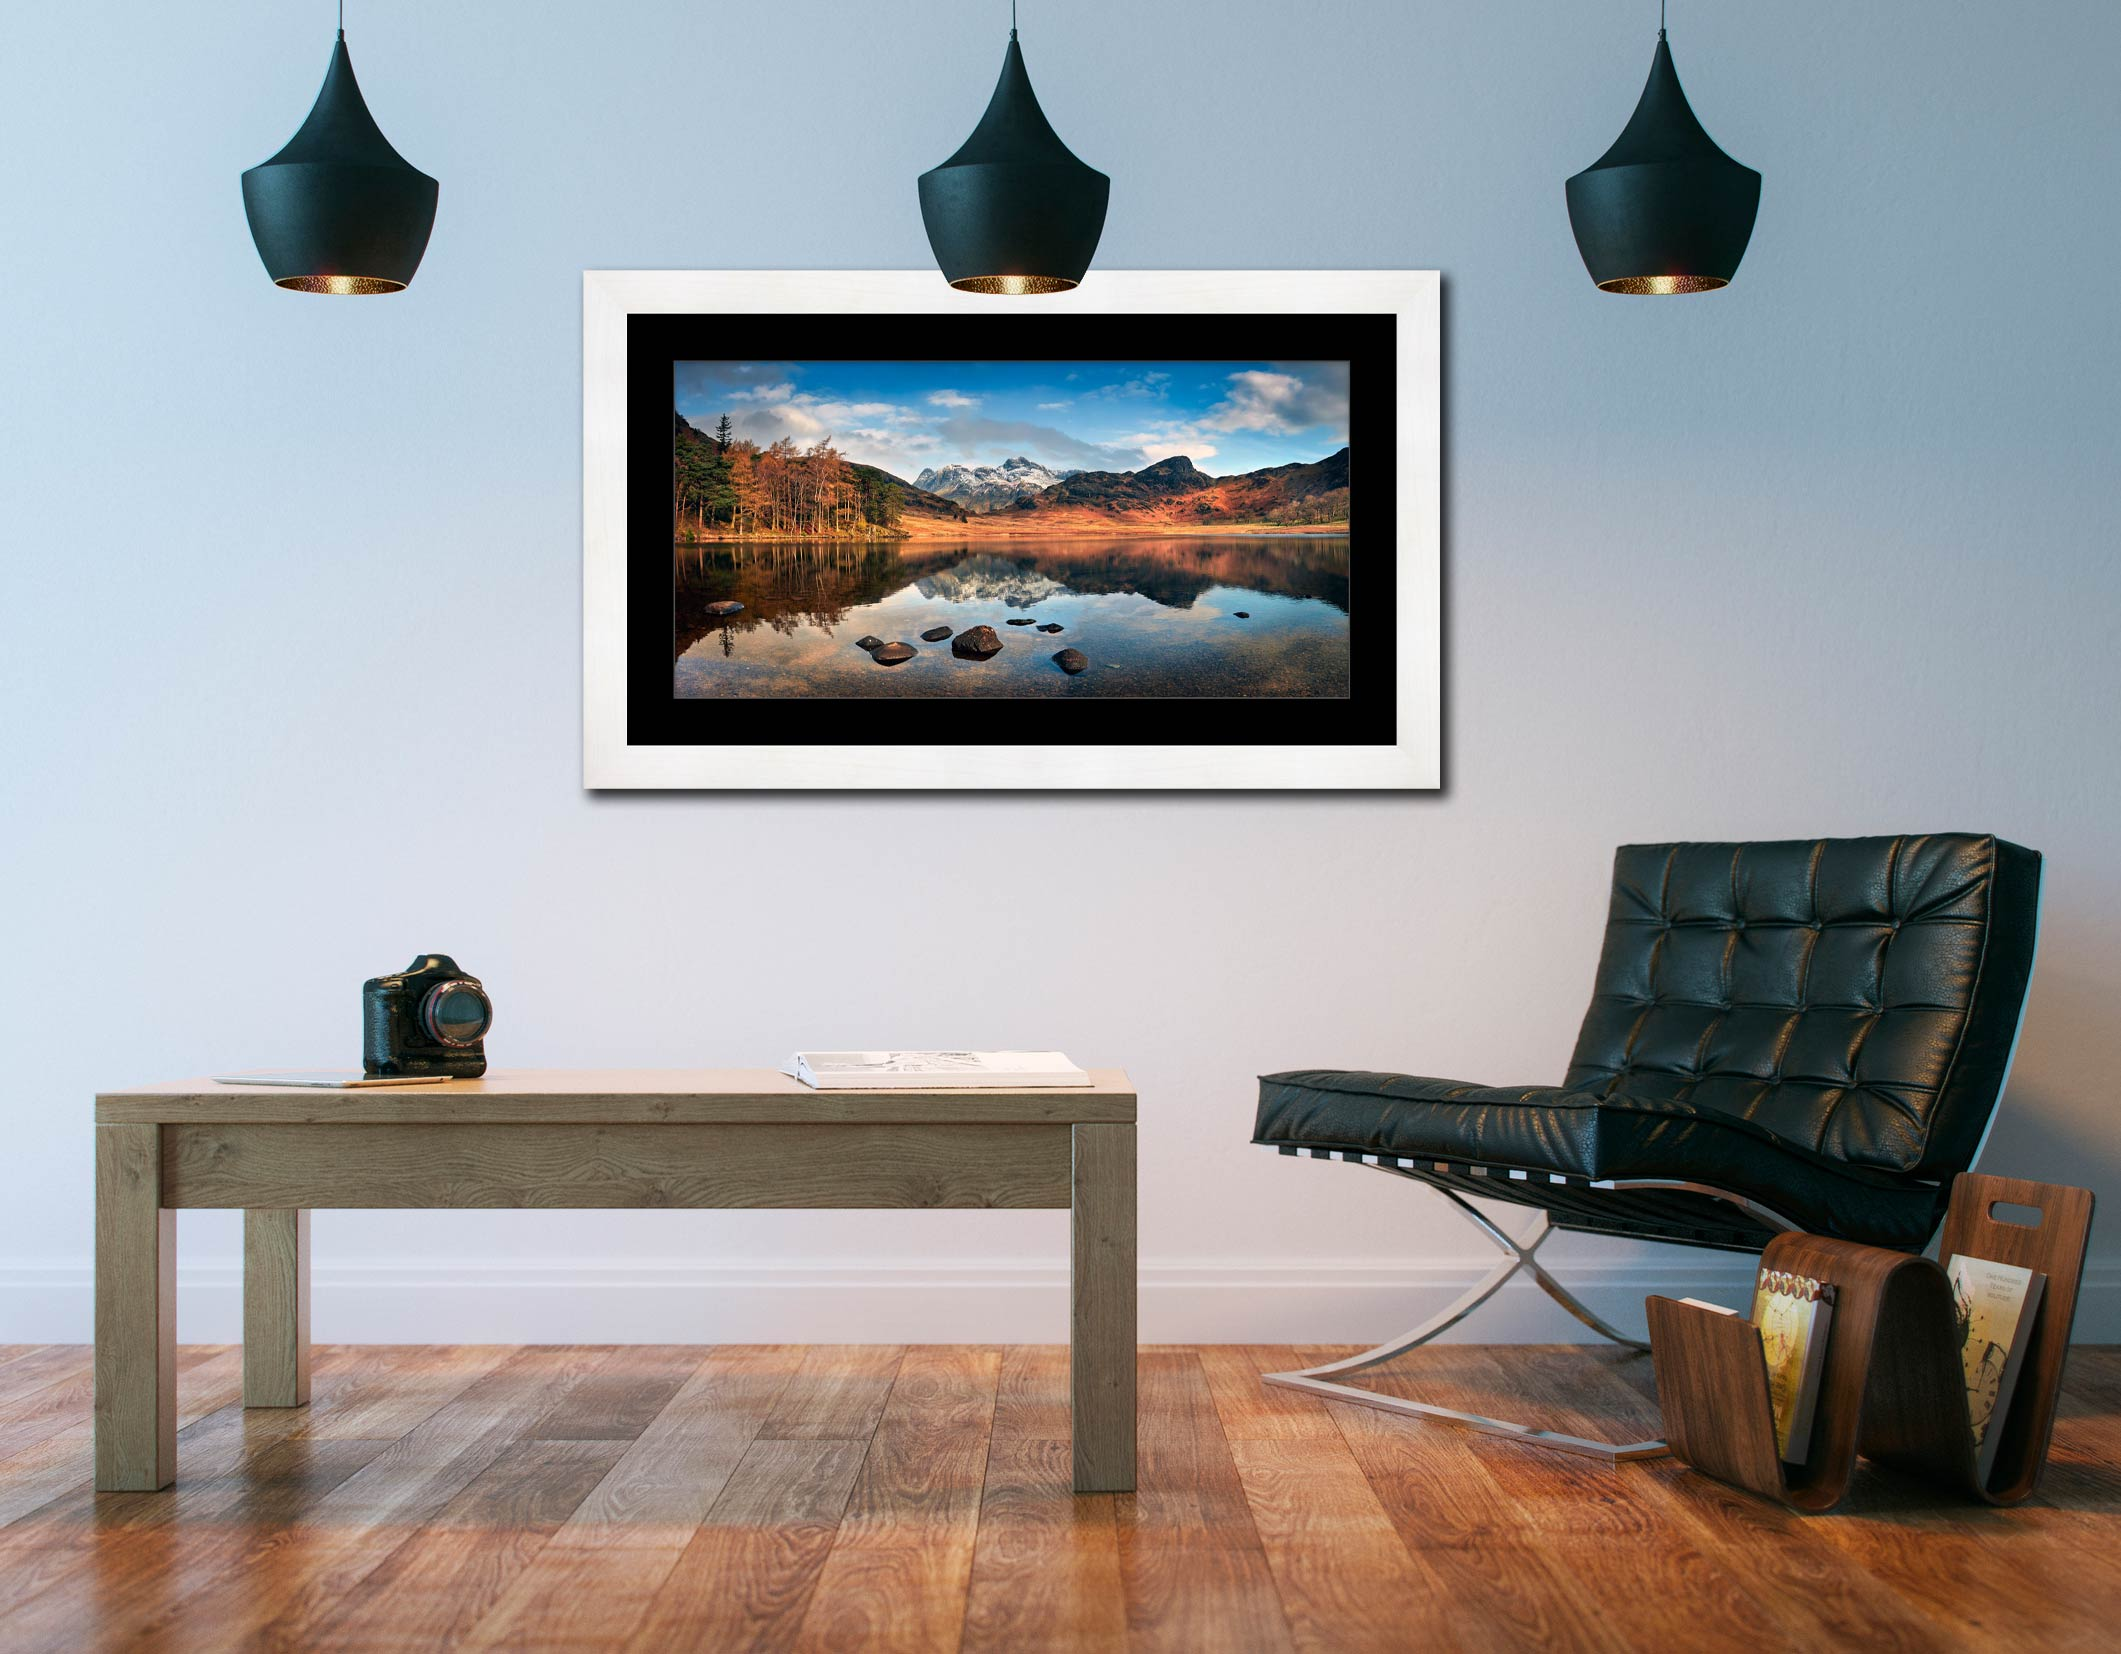 Spring Sunshine on Blea Tarn - Framed Print with Mount on Wall